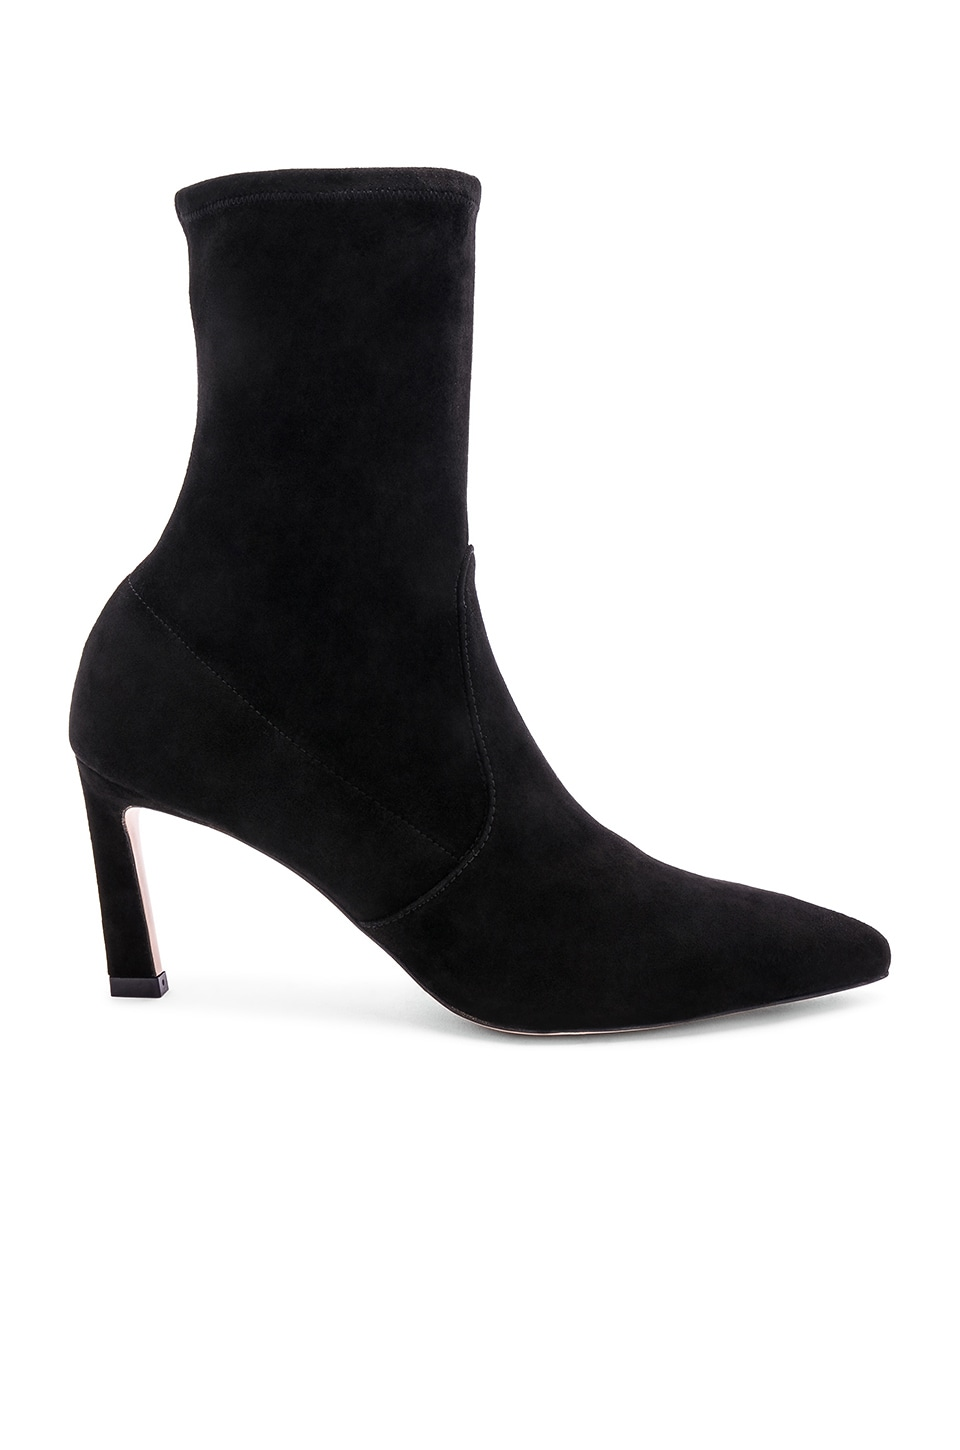 Stuart Weitzman Rapture Boot in Black Suede